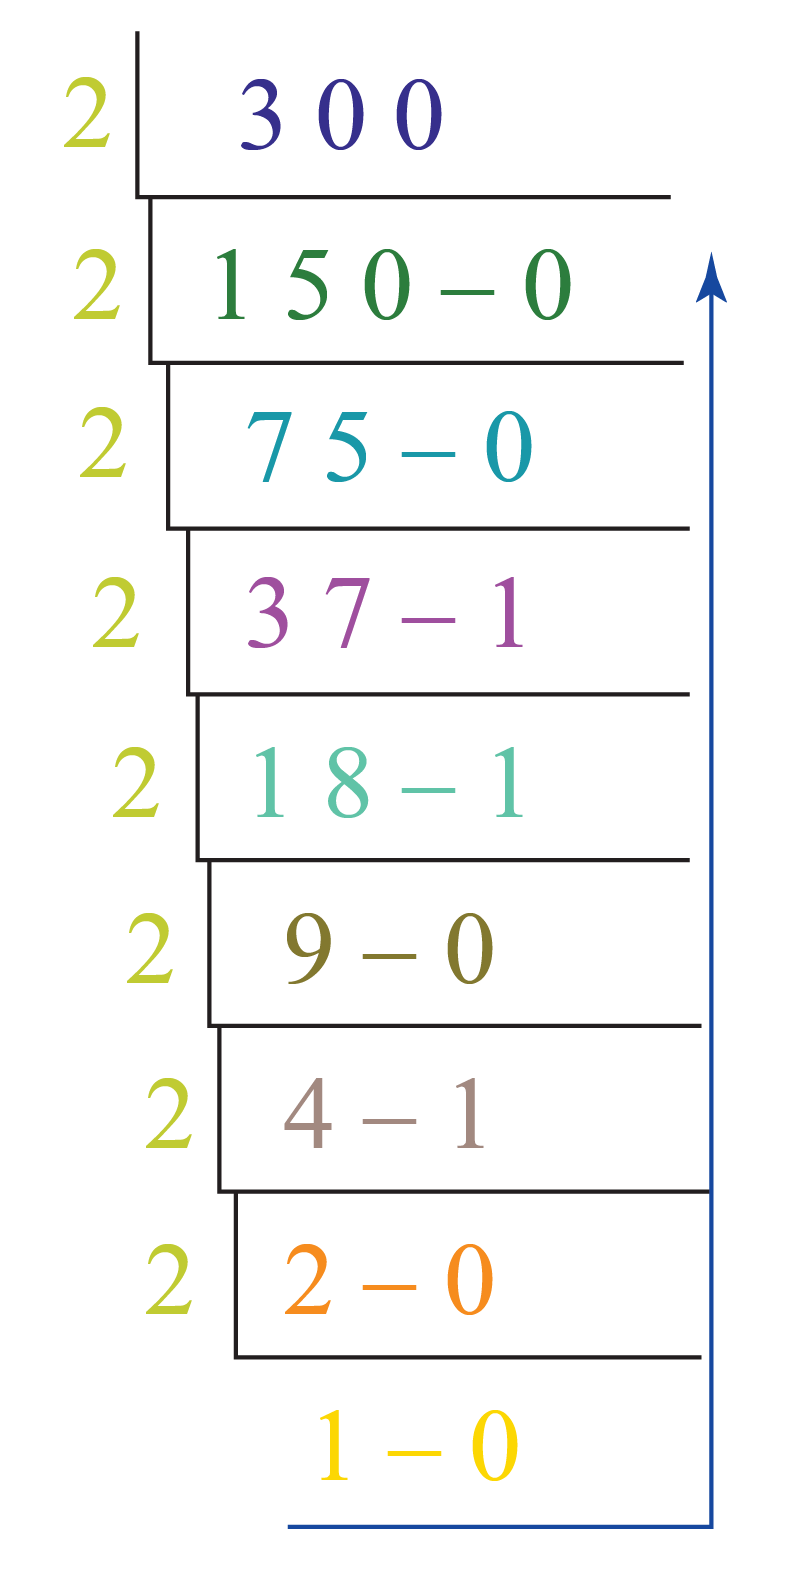 number system conversion of decimal number 300 into binary number system